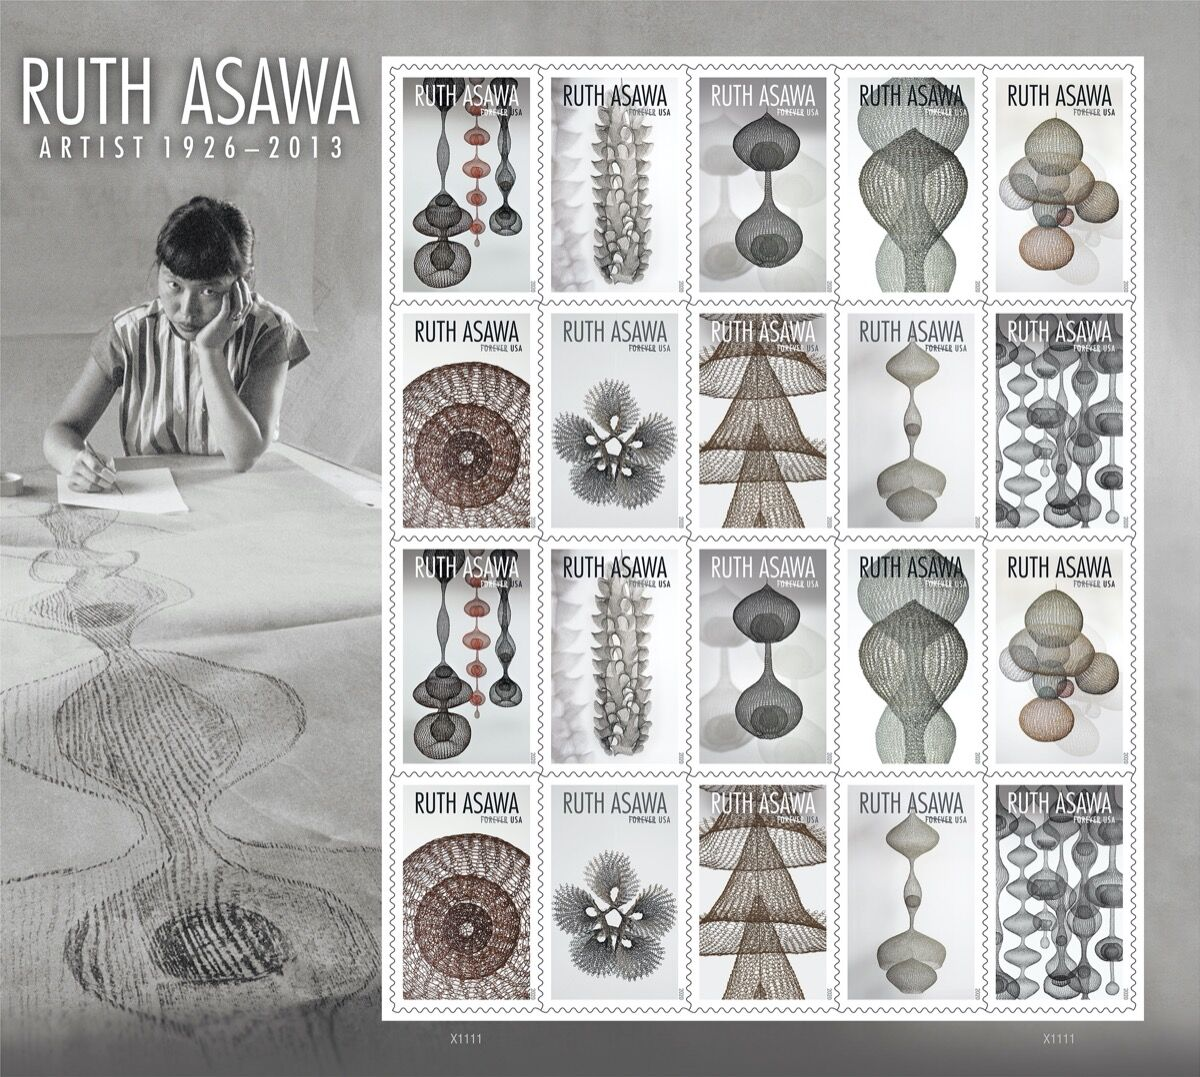 Ruth Asawa's USPS stamp series. Courtesy of United States Postal Service.